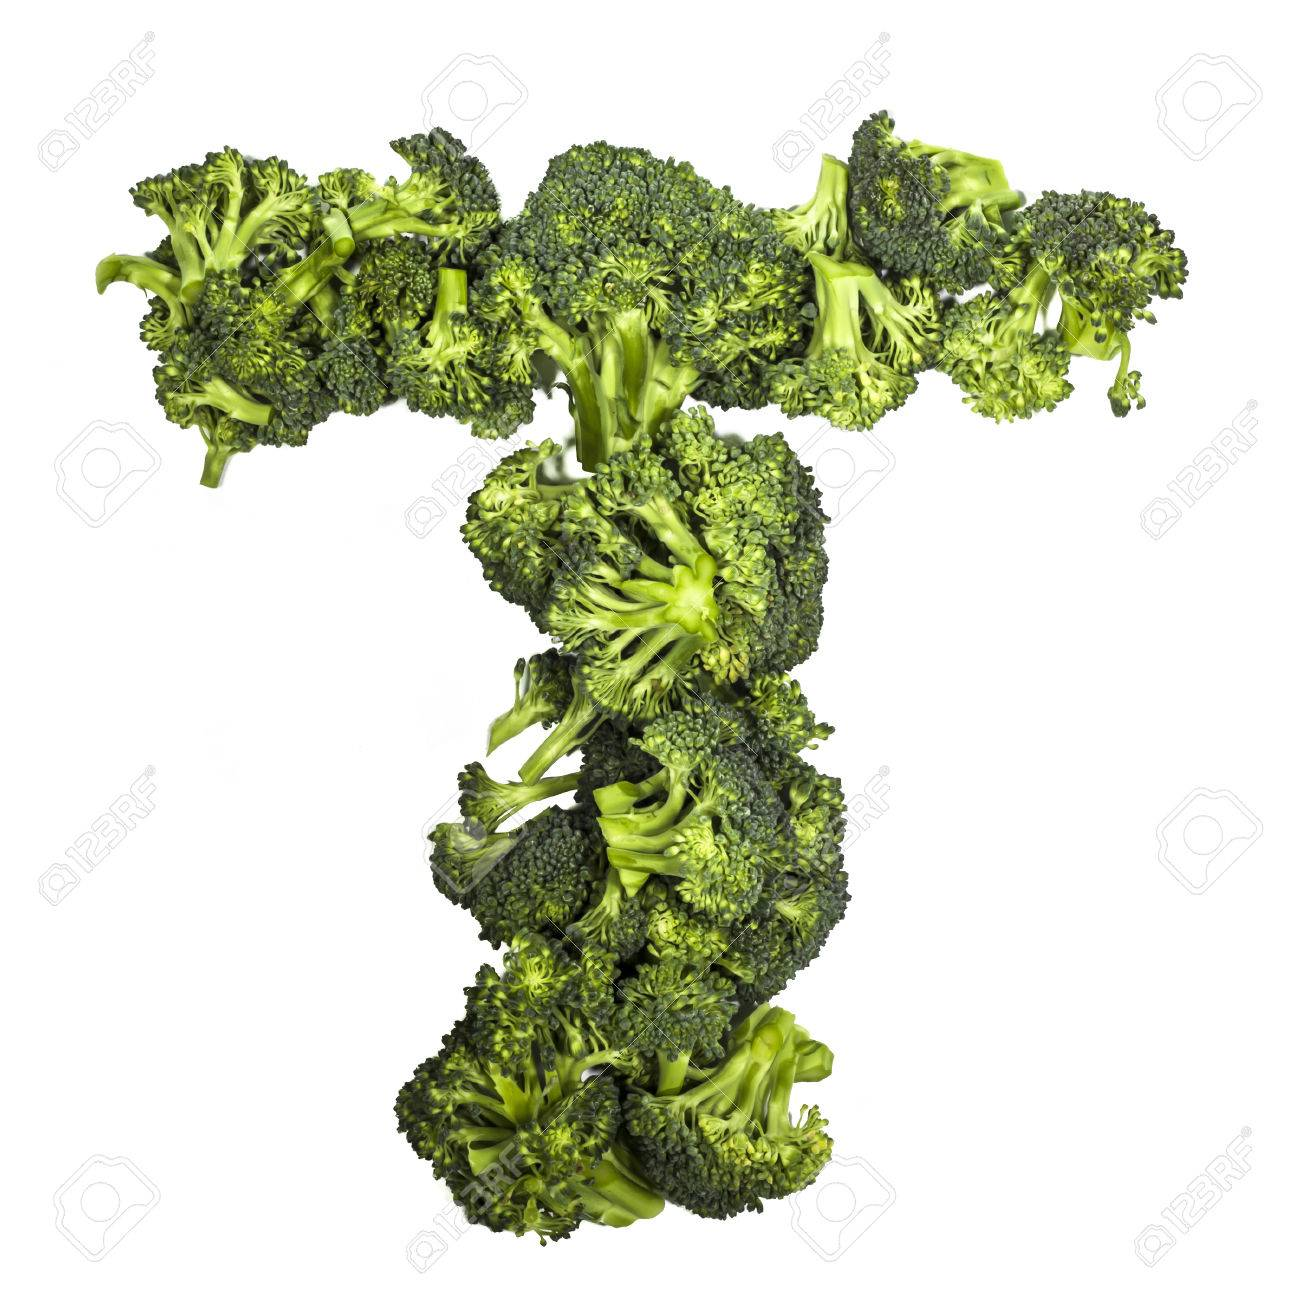 Broccoli letter T on white background, high contrast - 27995154